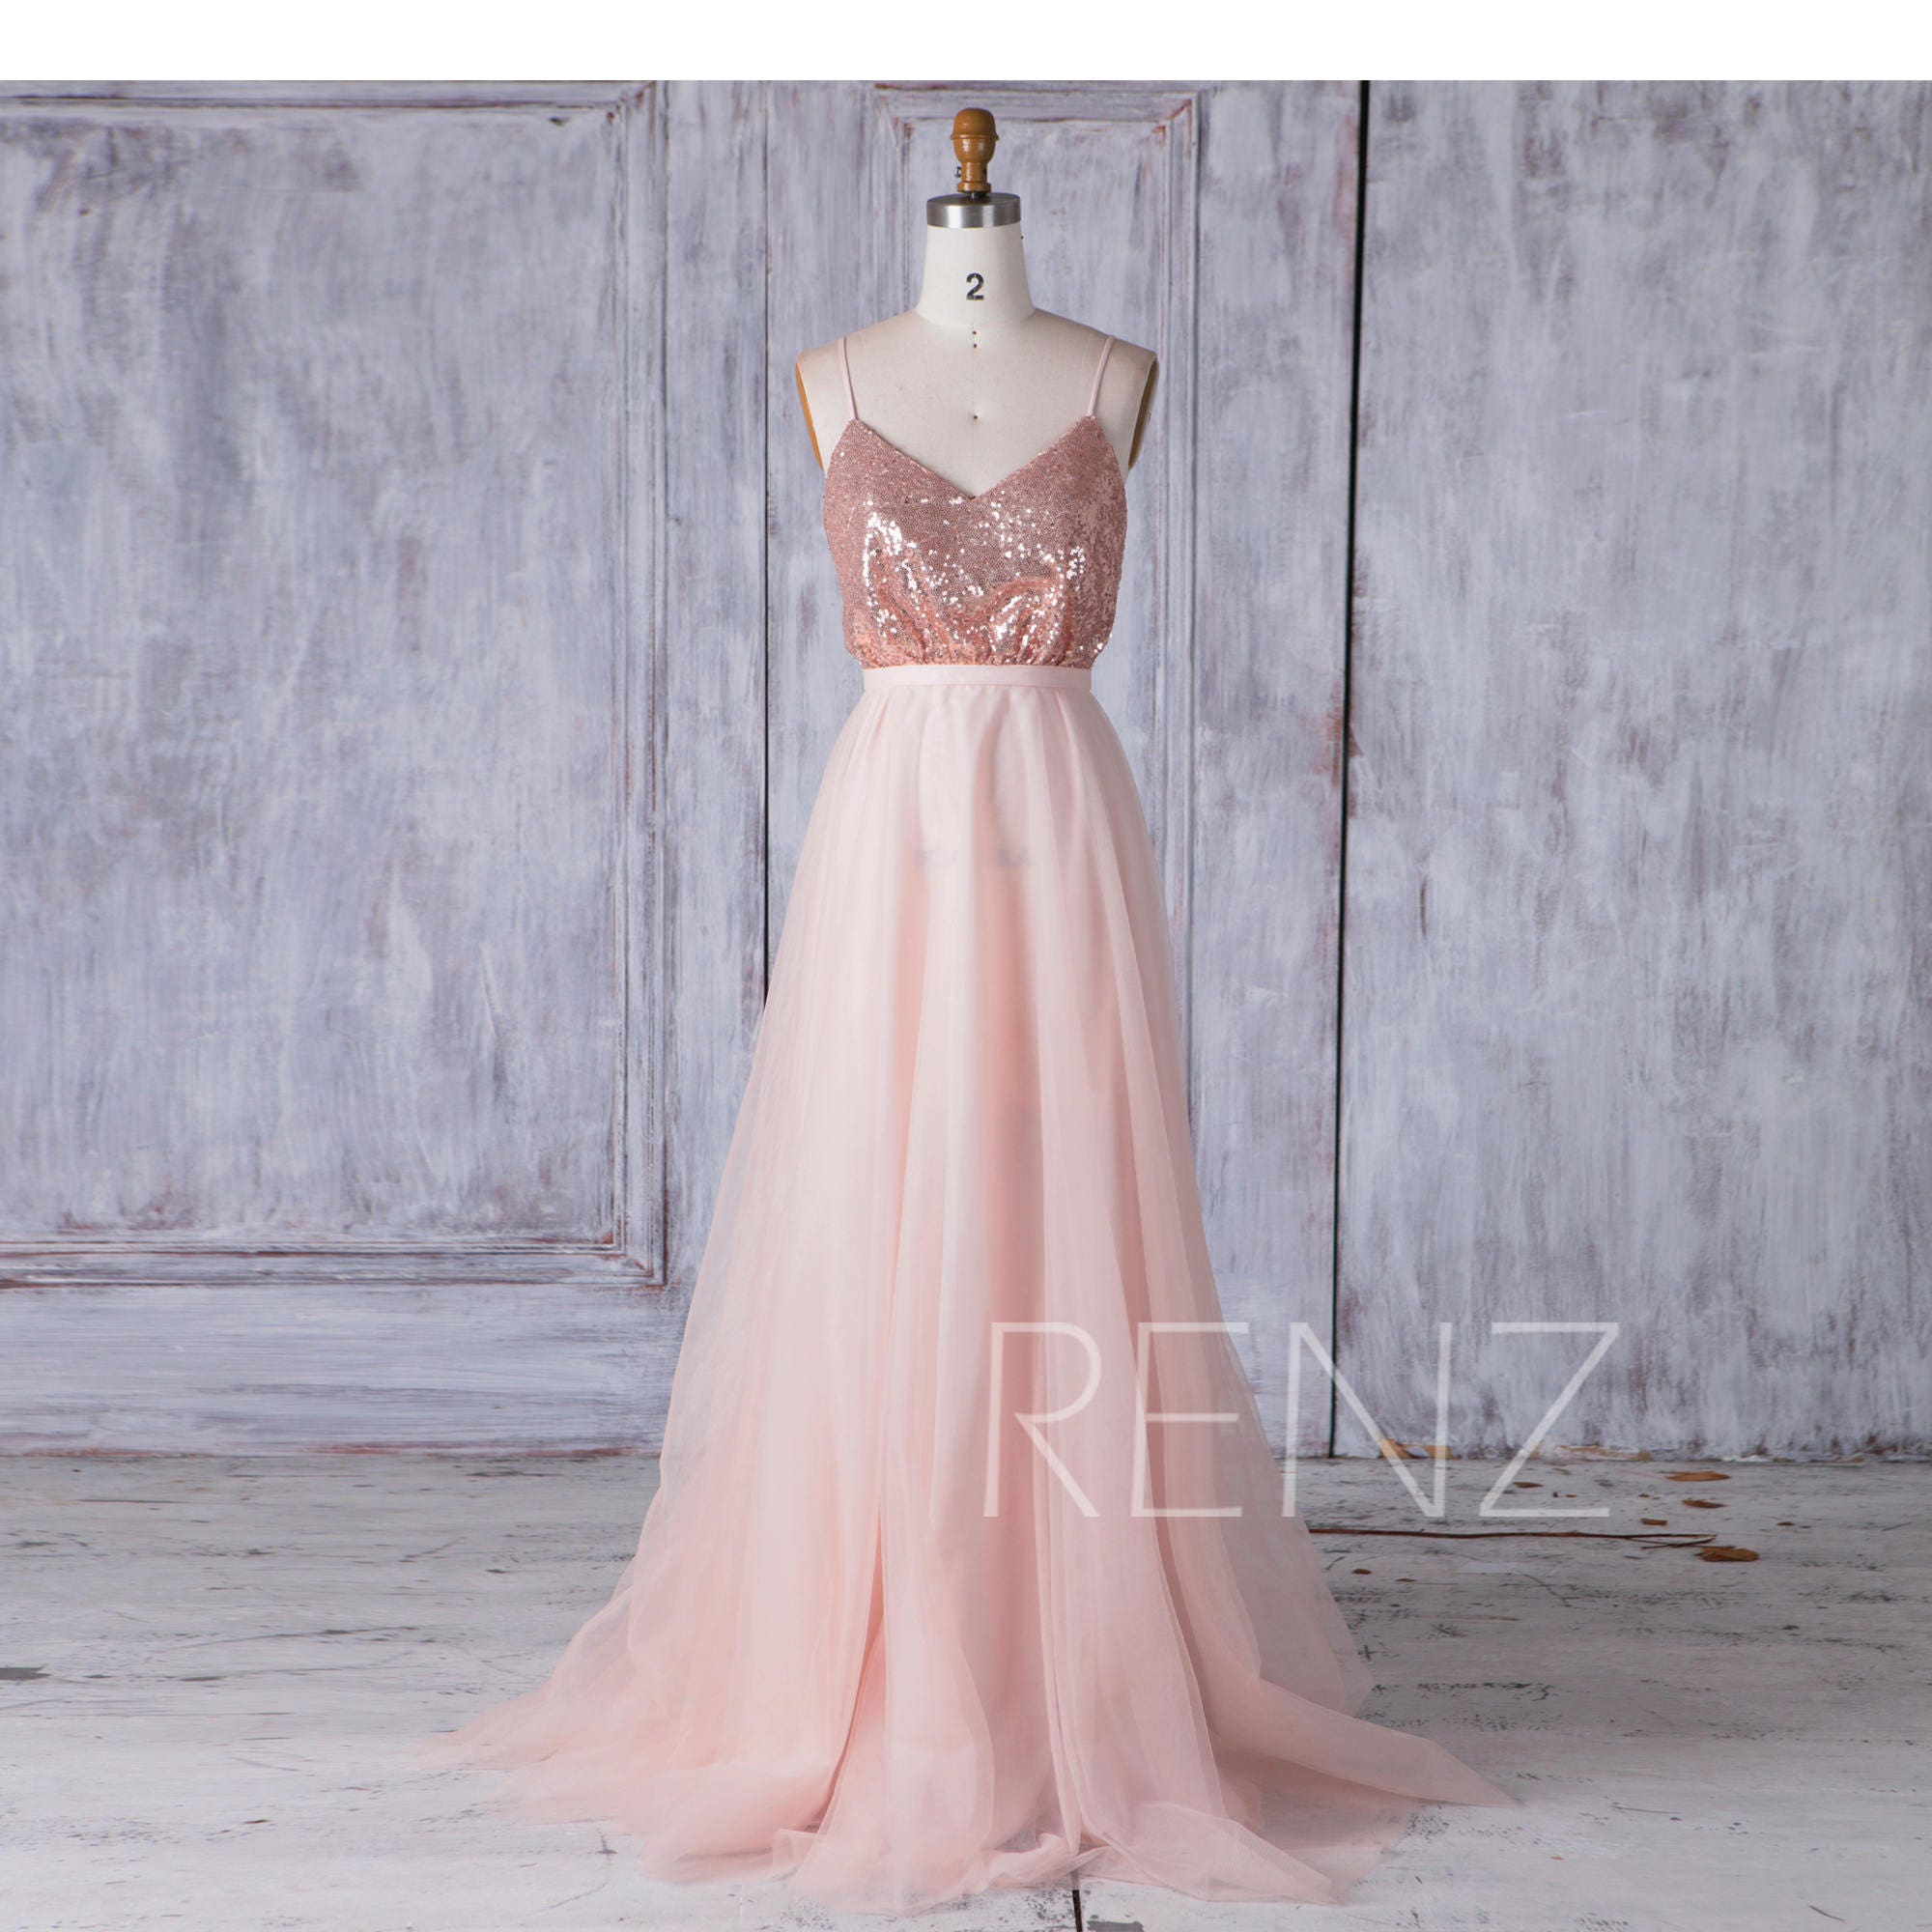 cda25bfc1f Rose Gold Sequin Bridesmaid Dress A Line Tulle Wedding